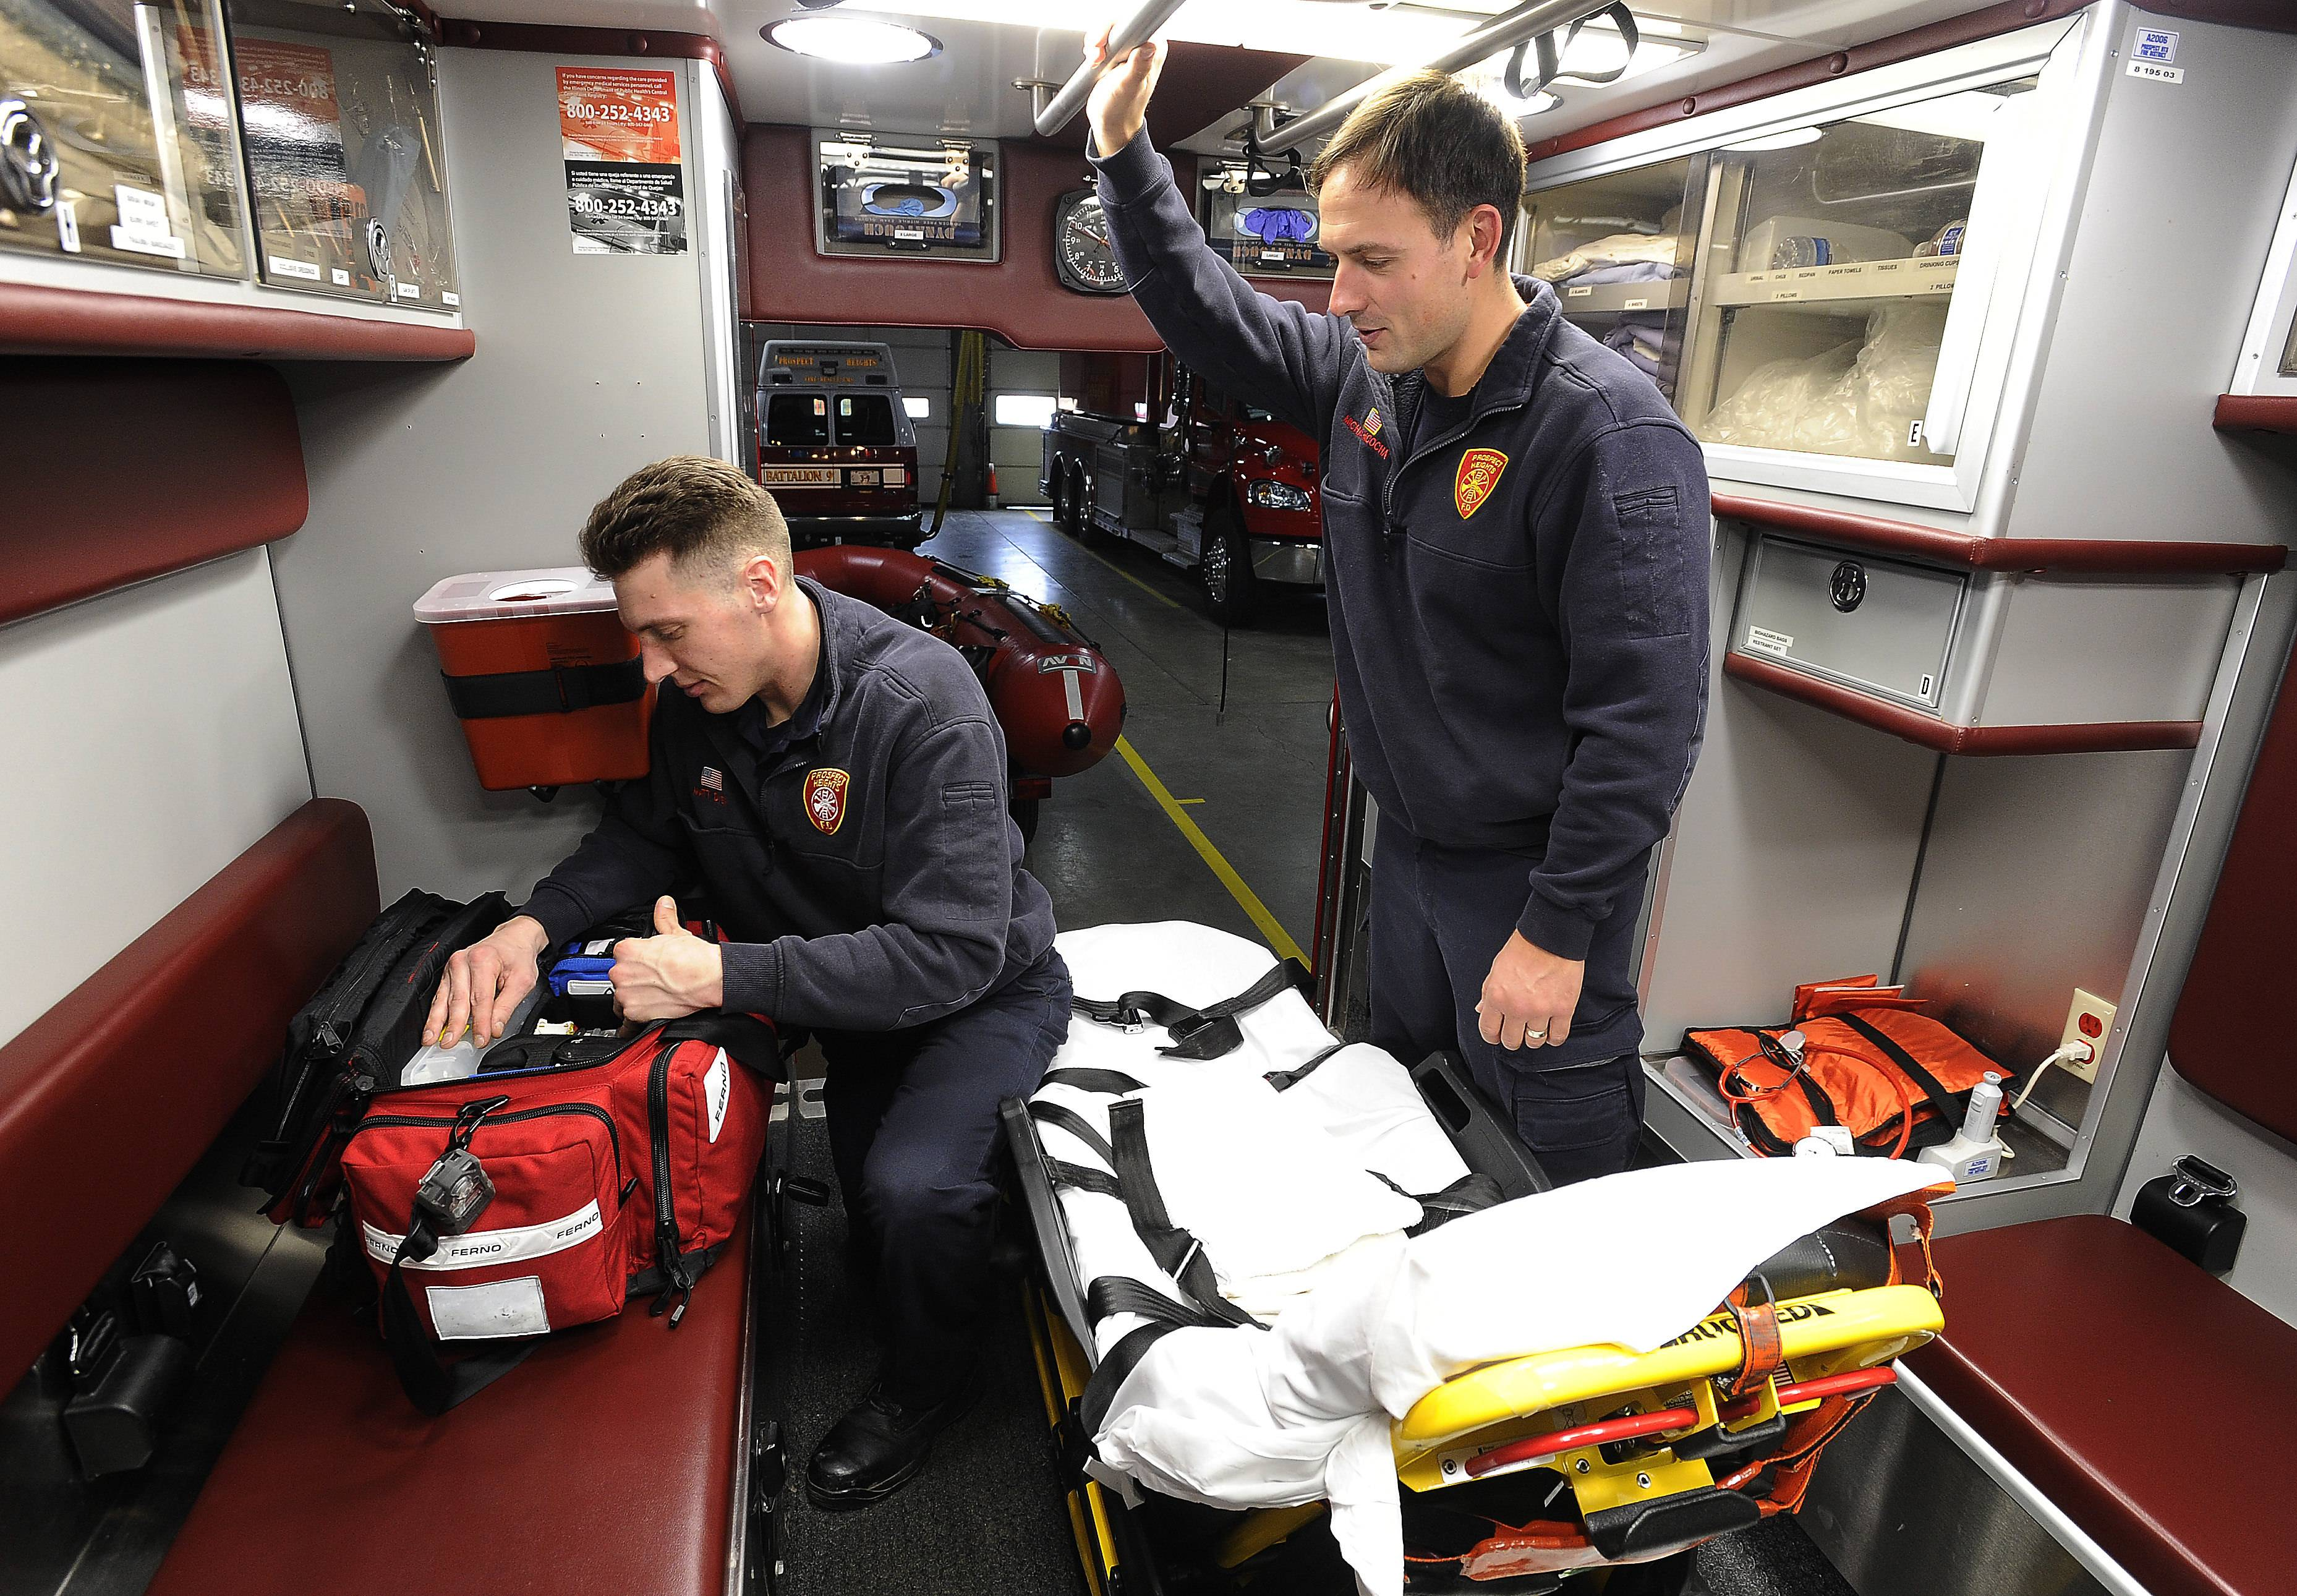 Prospect Heights firefighter/paramedic Mike Pacocha, right, works with partner Matt Dyer checking their supplies after responding to a call. Voters will decide March 20 whether to approve a tax hike to prevent staff and service cuts at the Prospect Heights Fire Protection District.